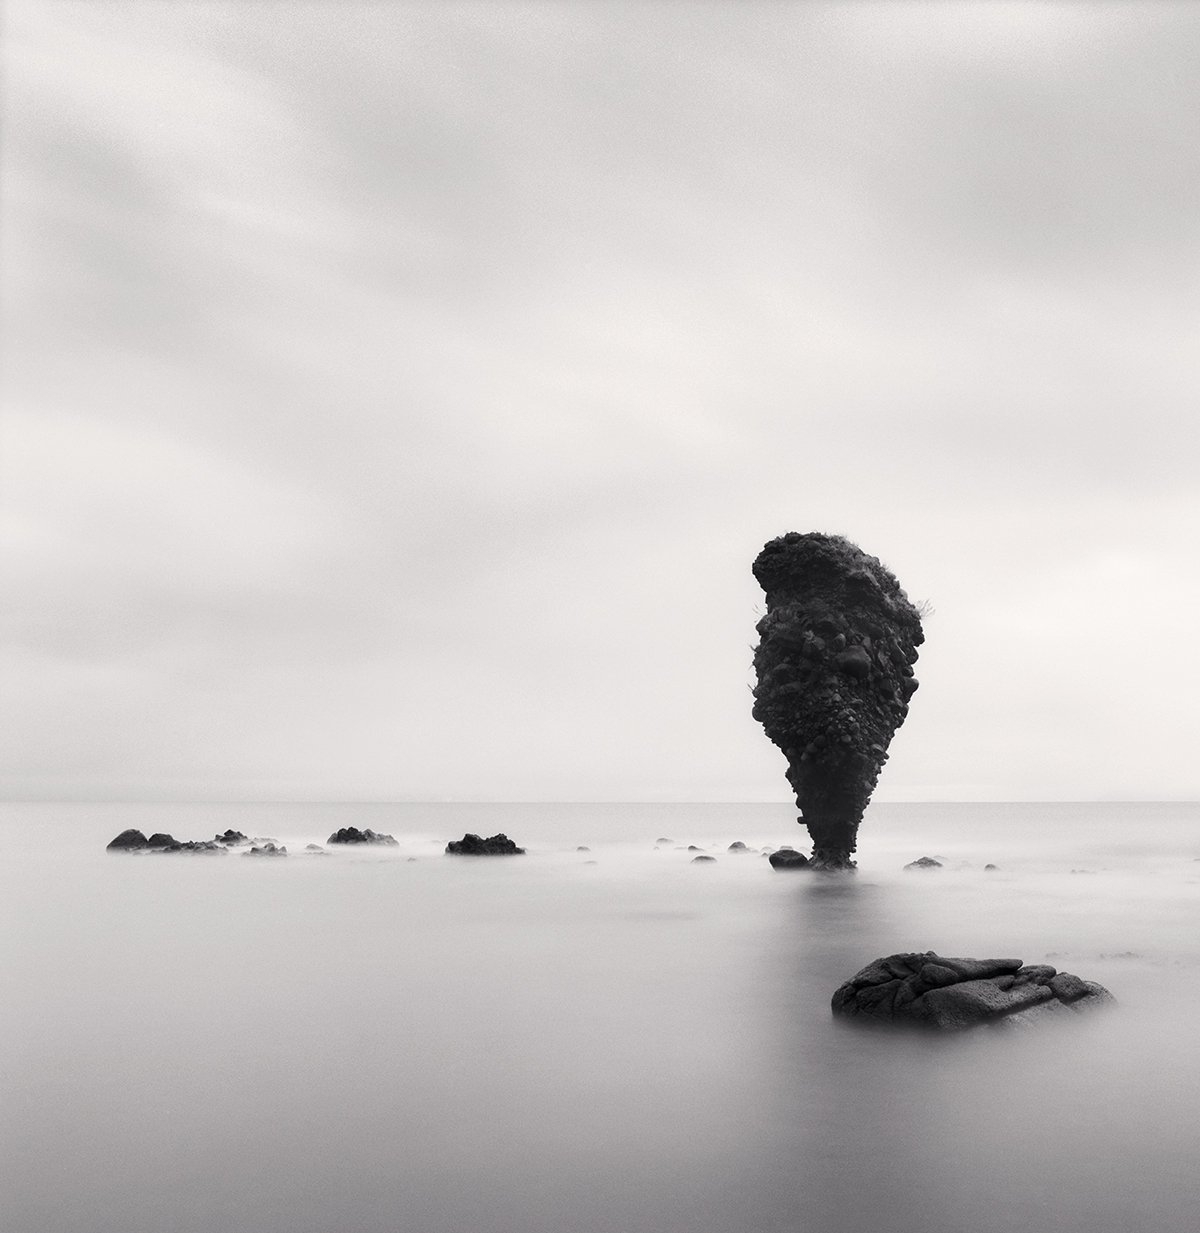 black_and_white_landscape_photography_19.jpg